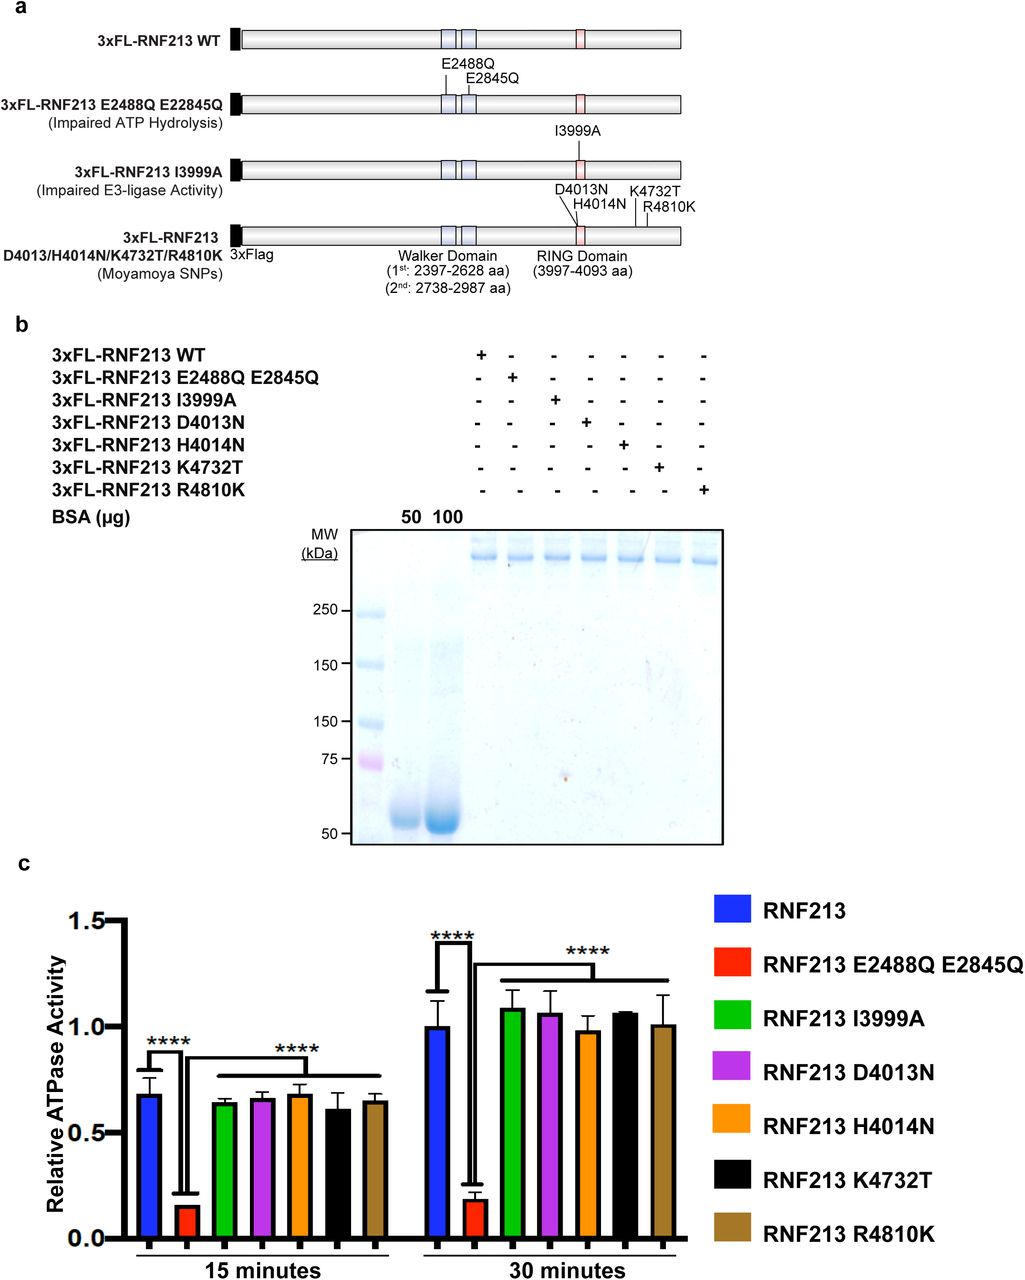 MMD SNPs do not affect AAA+ ATPase activity of RNF213 a , Schematic showing RNF213 WT and positions of AAA+ ATPase (E2488Q, E2845Q), RING (I3999A) and MMD-associated (D4013N, H4014N, K4732T, R4810K) mutants. b , HeLa Flp-In T-Rex KO cells were transfected with 3x Flag RNF213 WT , 3x Flag RNF213 E2488Q, E2845Q , 3x-Flag-RNF213 I3999A , 3x-Flag-RNF213 D4013N , 3x-Flag-RNF213 H4014N , 3x-Flag-RNF213 K4732T or 3x-Flag-RNF213 R4810K . Thirty-six hours post-transfection, cells were harvested and lysates were subjected to immunoprecipitation using anti-Flag antibody. Purified RNF213 variants were detected by SDS-PAGE and Coomassie blue staining. BSA was loaded to aid in quantification of RNF213. c , ATPase activity of purified RNF213 variants from Fig. 2b . Error bars represent means ± SD of three independent experiments, each with samples in triplicate. Statistical significance was evaluated by two-way ANOVA, followed by Dunnett test.